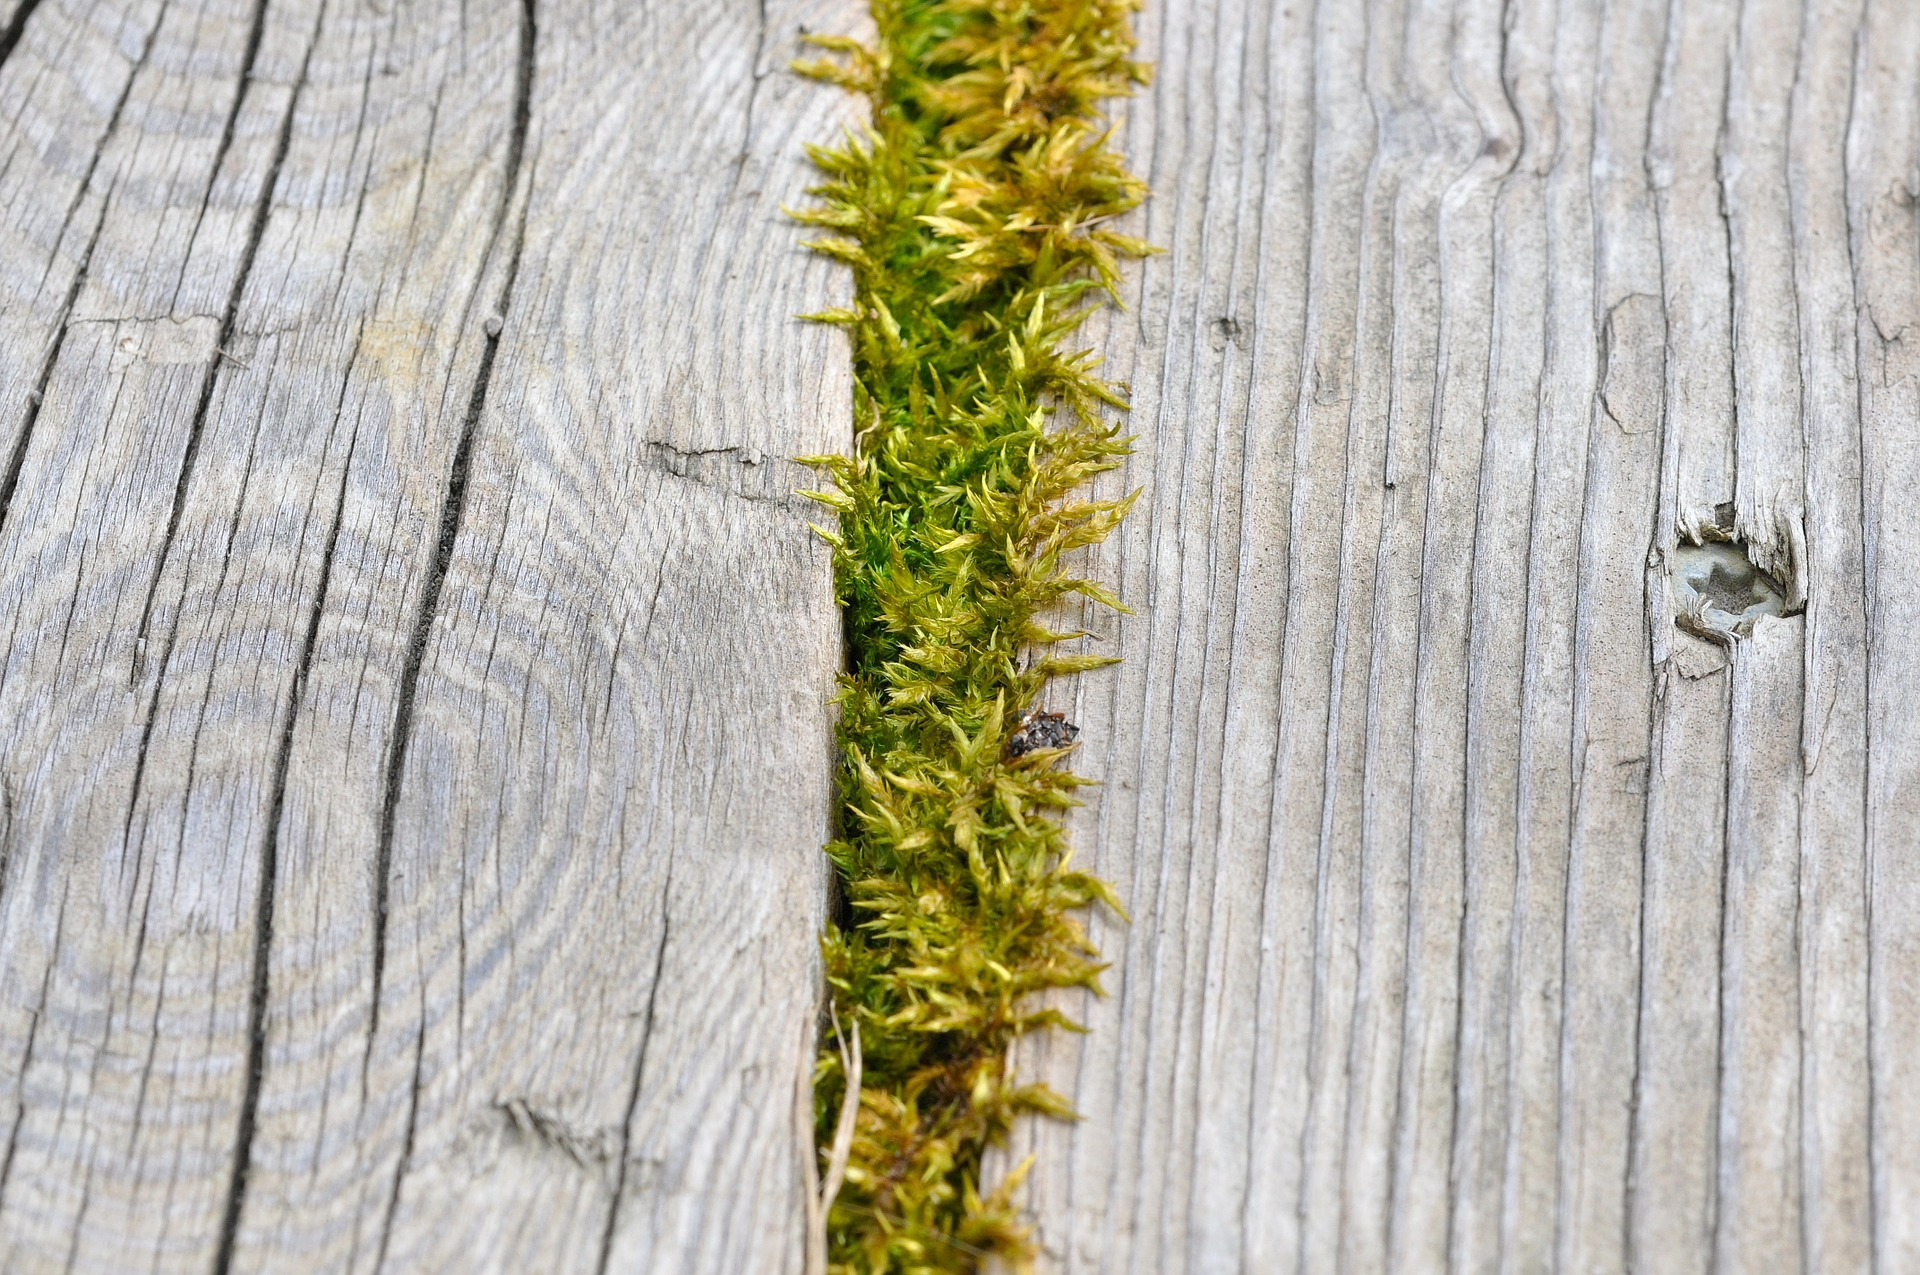 Moss, Wood, Wooden, Way, Texture, HQ Photo